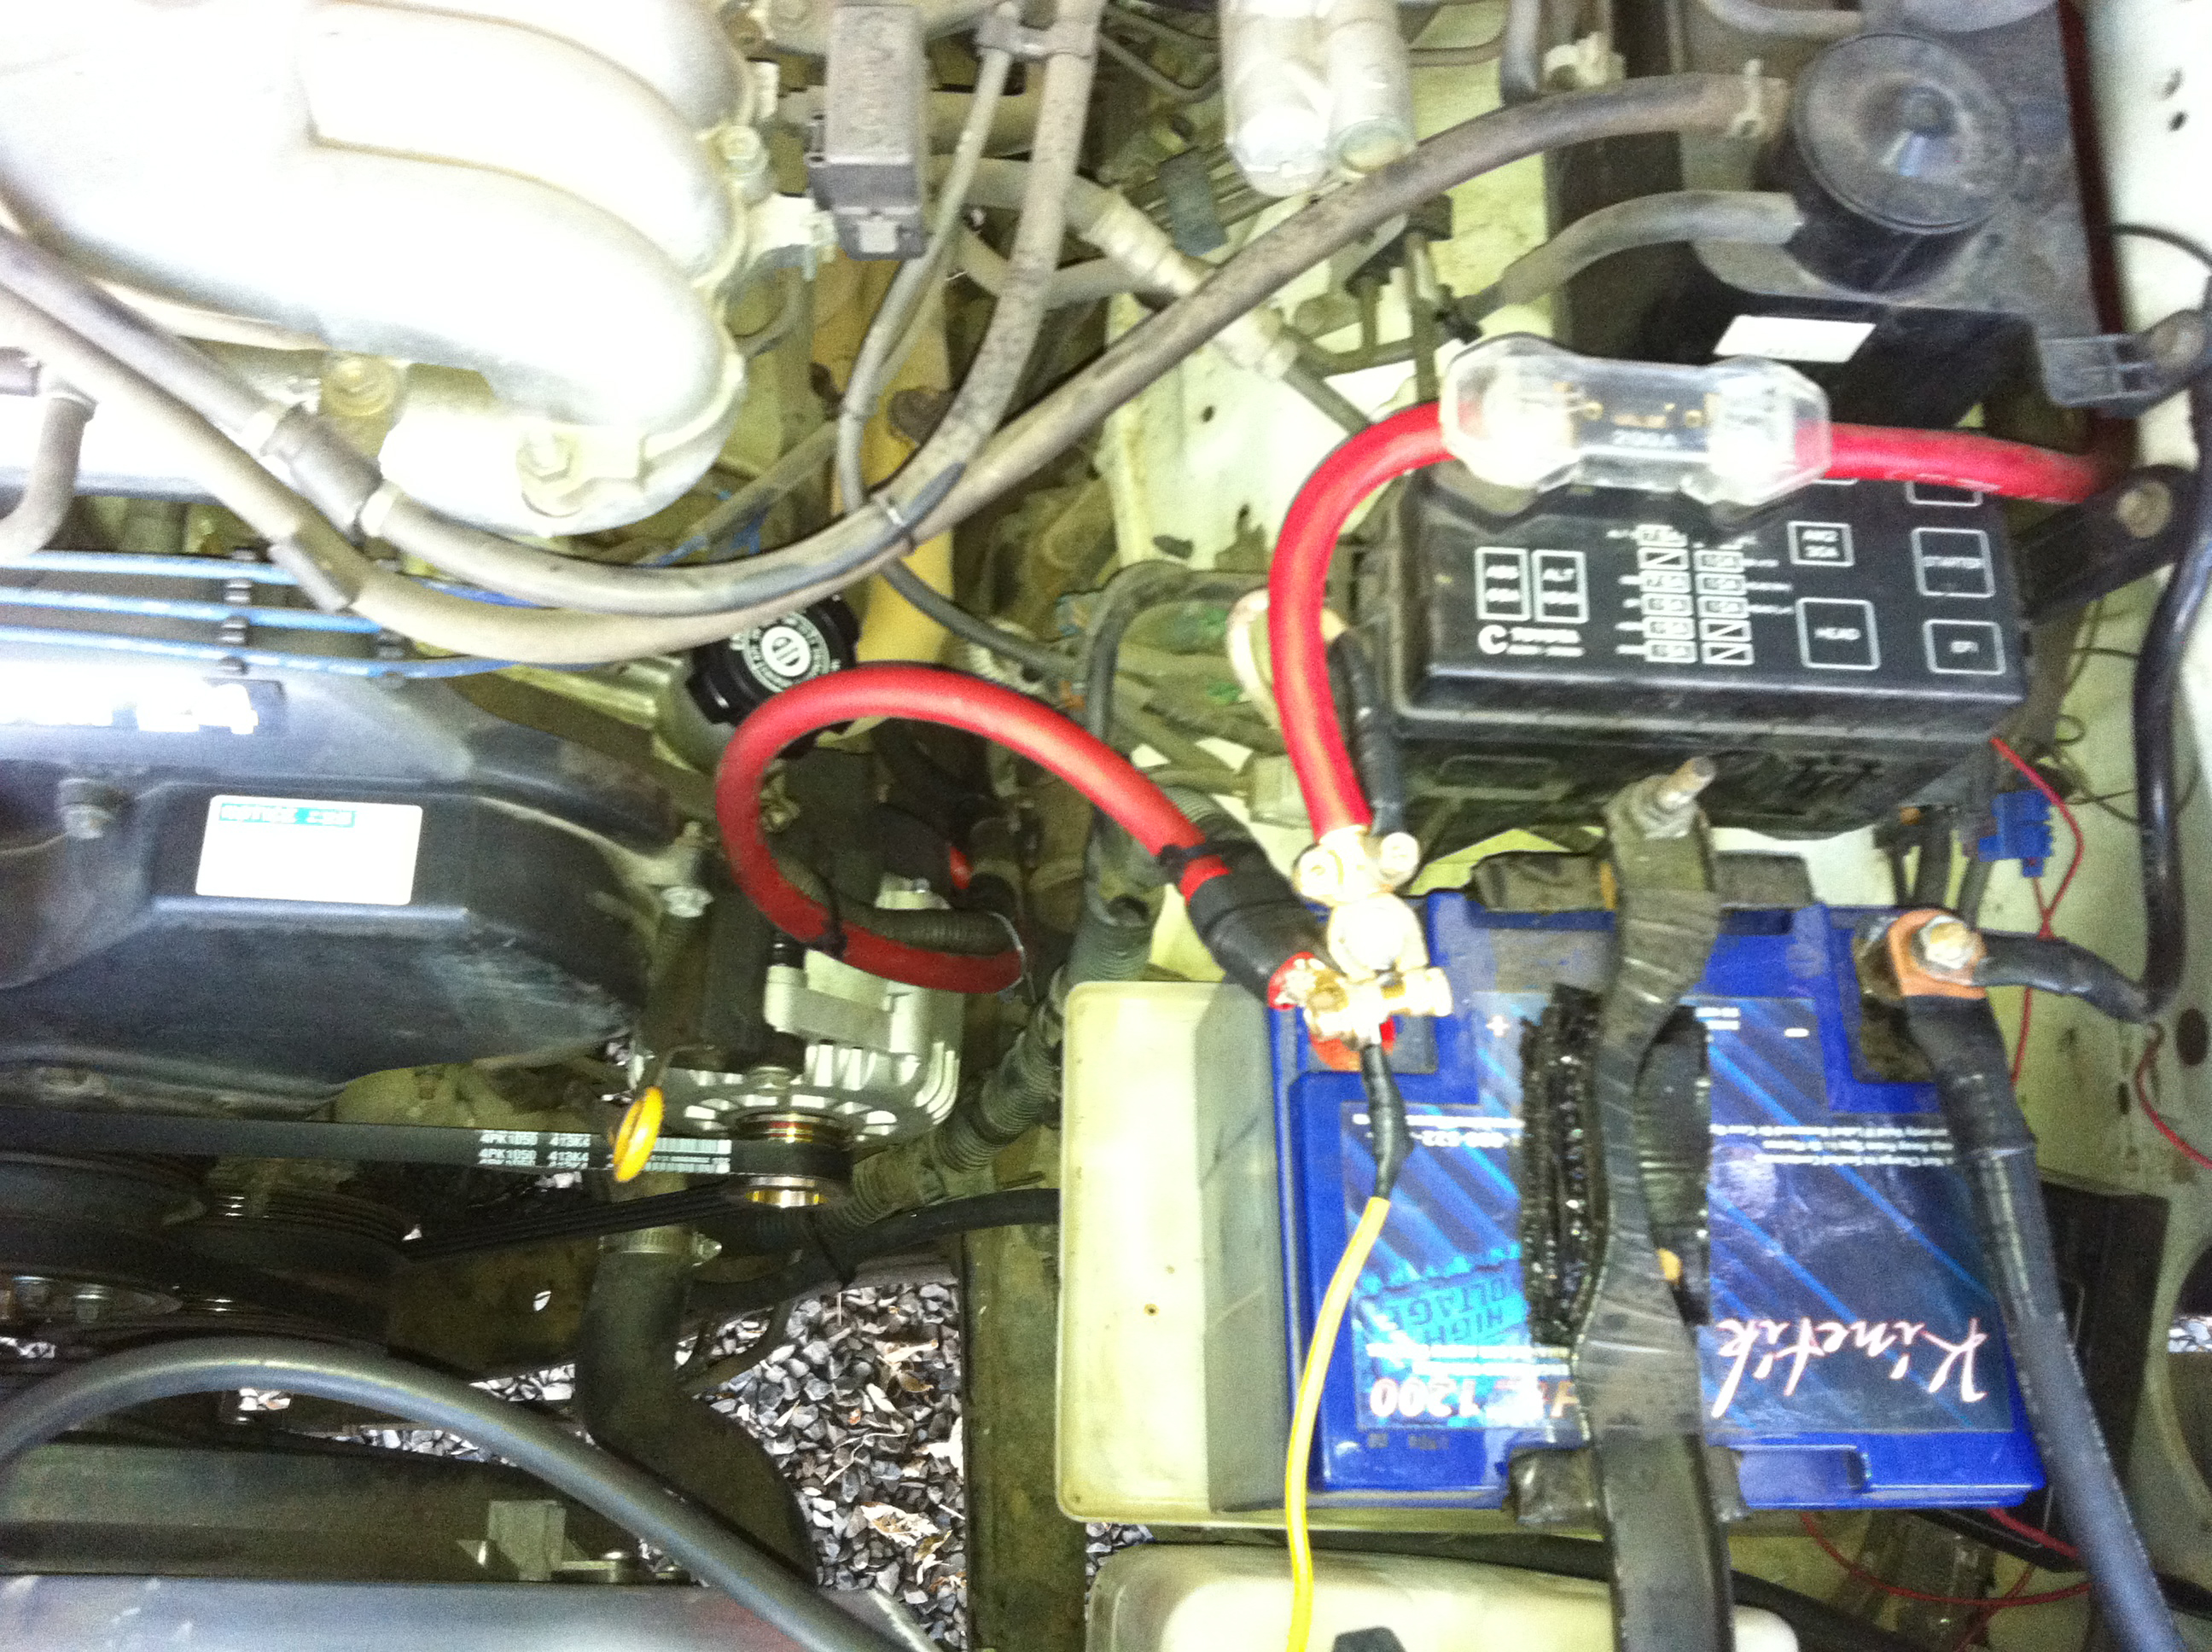 High Output Alternators And Accessories Dual Alternator Wiring Installation Details From The Customer 1996 Toyota 4 Runner 34ltr 5vzfe With 16inch Electric Fan Car Stereo2600watts Continuous Was